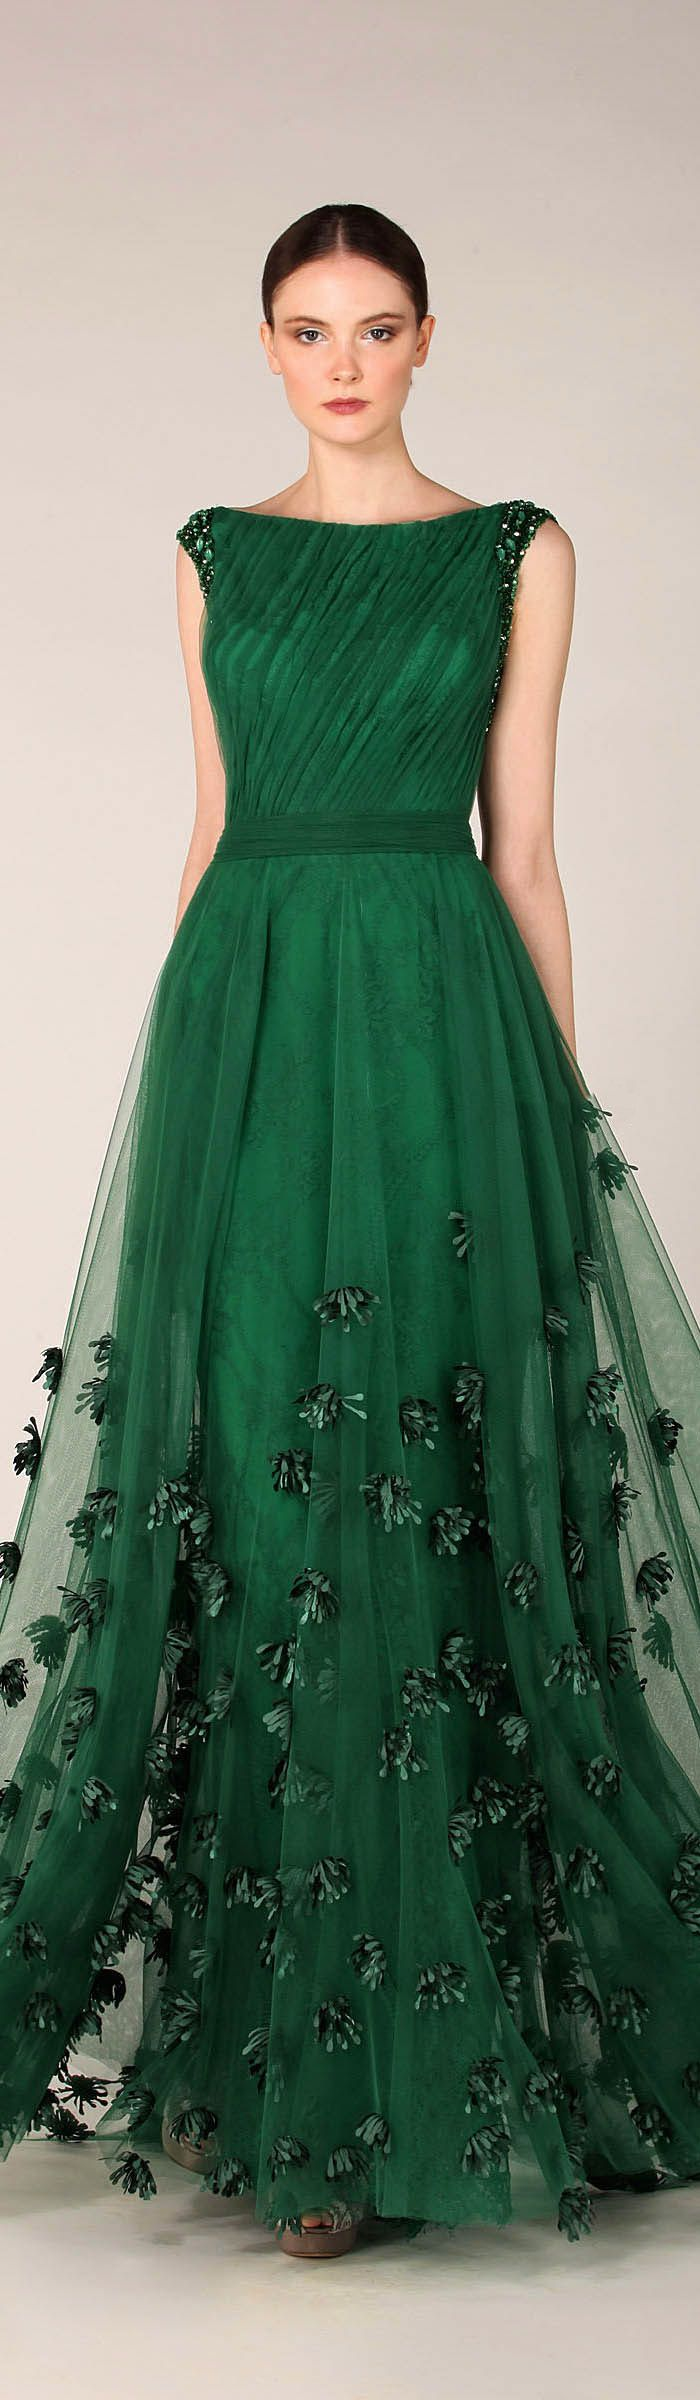 Tony Ward Fall Winter 2013-2014 love the color but I would take the flowers on the bottom off